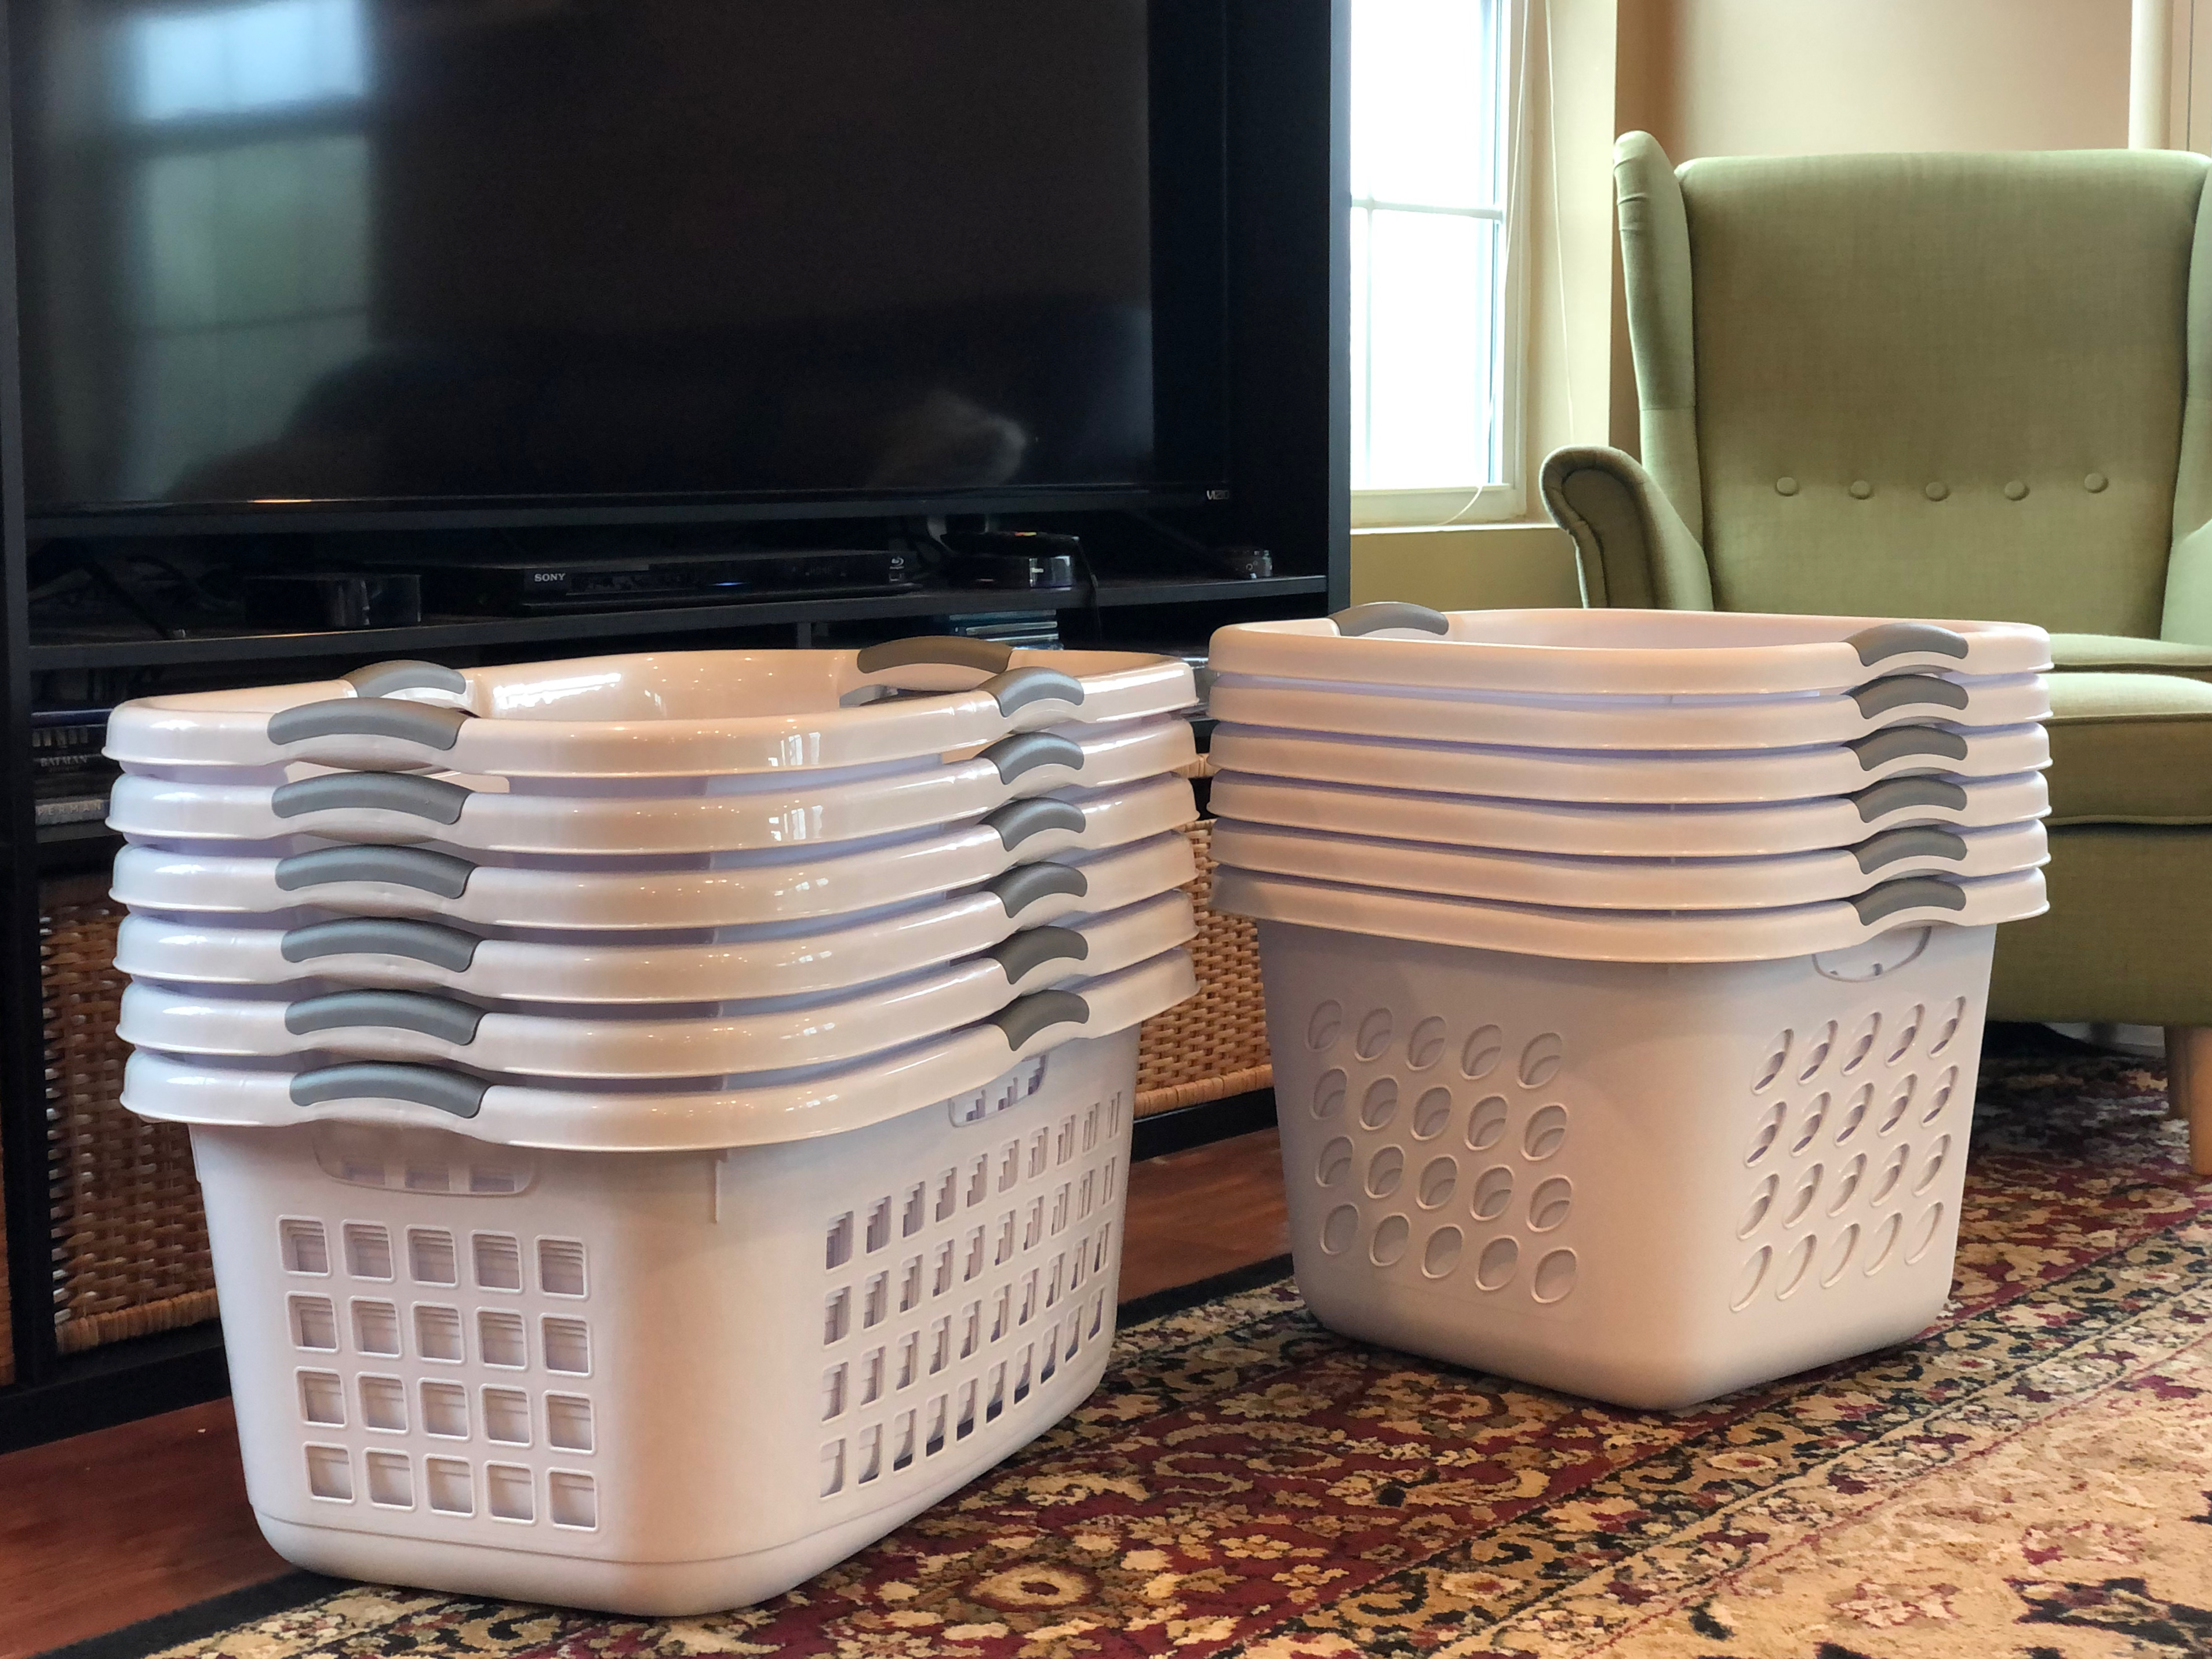 New Laundry Baskets from Amazon Shower 4/20